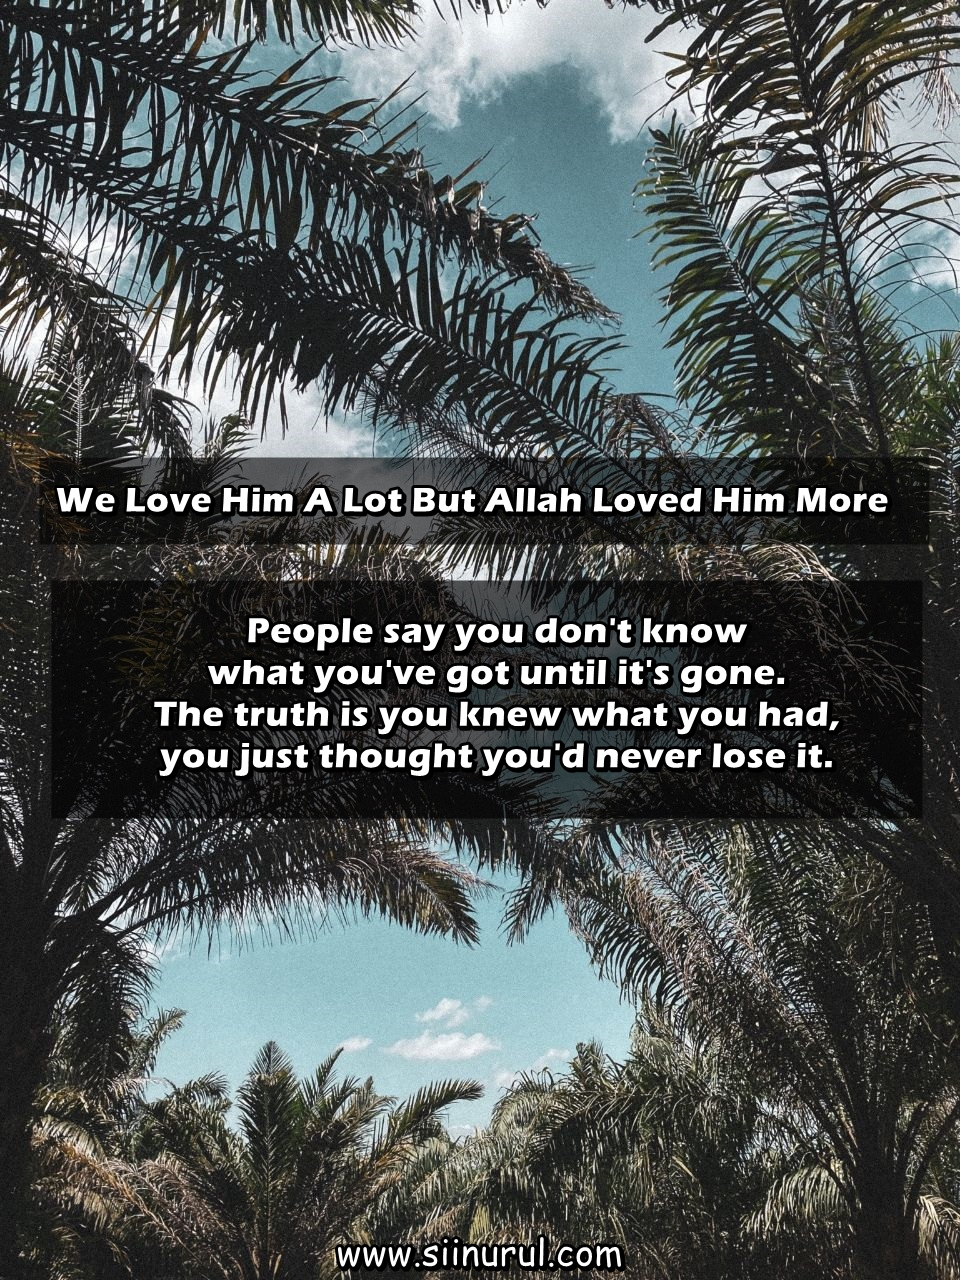 We Love Him A Lot But Allah Loved Him More